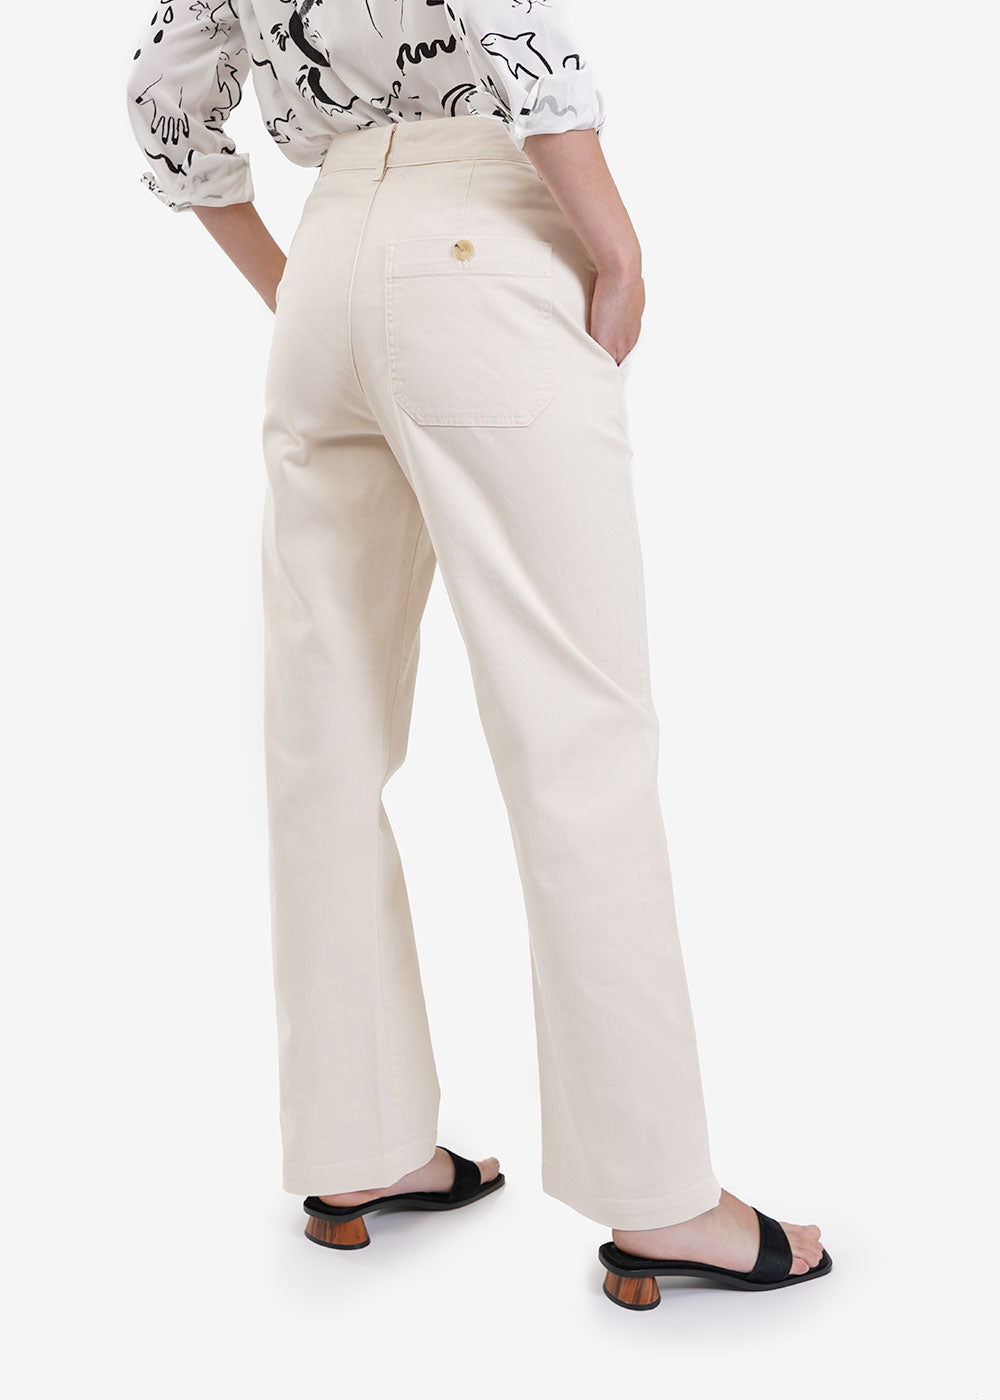 Paloma Wool Volta Trousers — Shop sustainable fashion and slow fashion at New Classics Studios